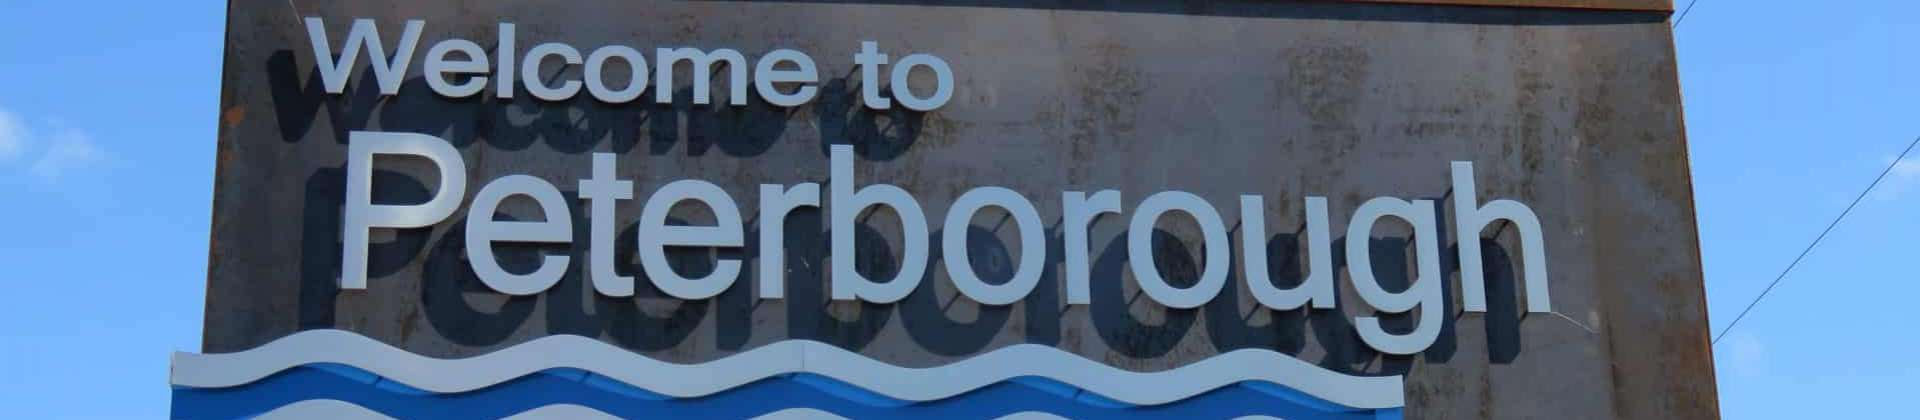 Welcome to Peterborough sign